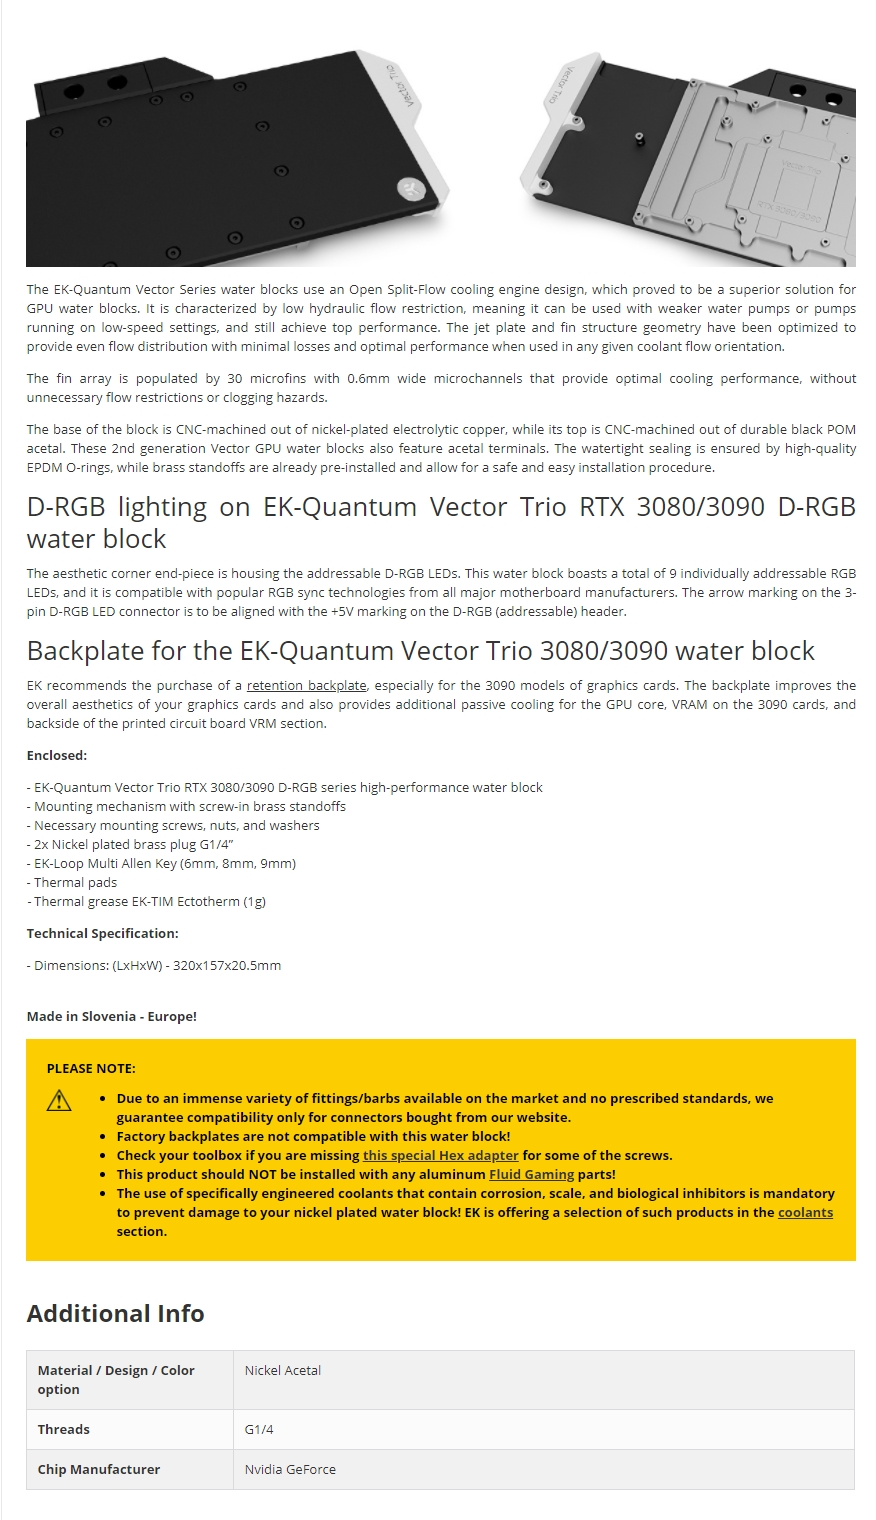 A large marketing image providing additional information about the product EK-Quantum Vector Trio RTX 3080/3090 D-RGB Nickel/Acetal GPU Waterblock - Additional alt info not provided